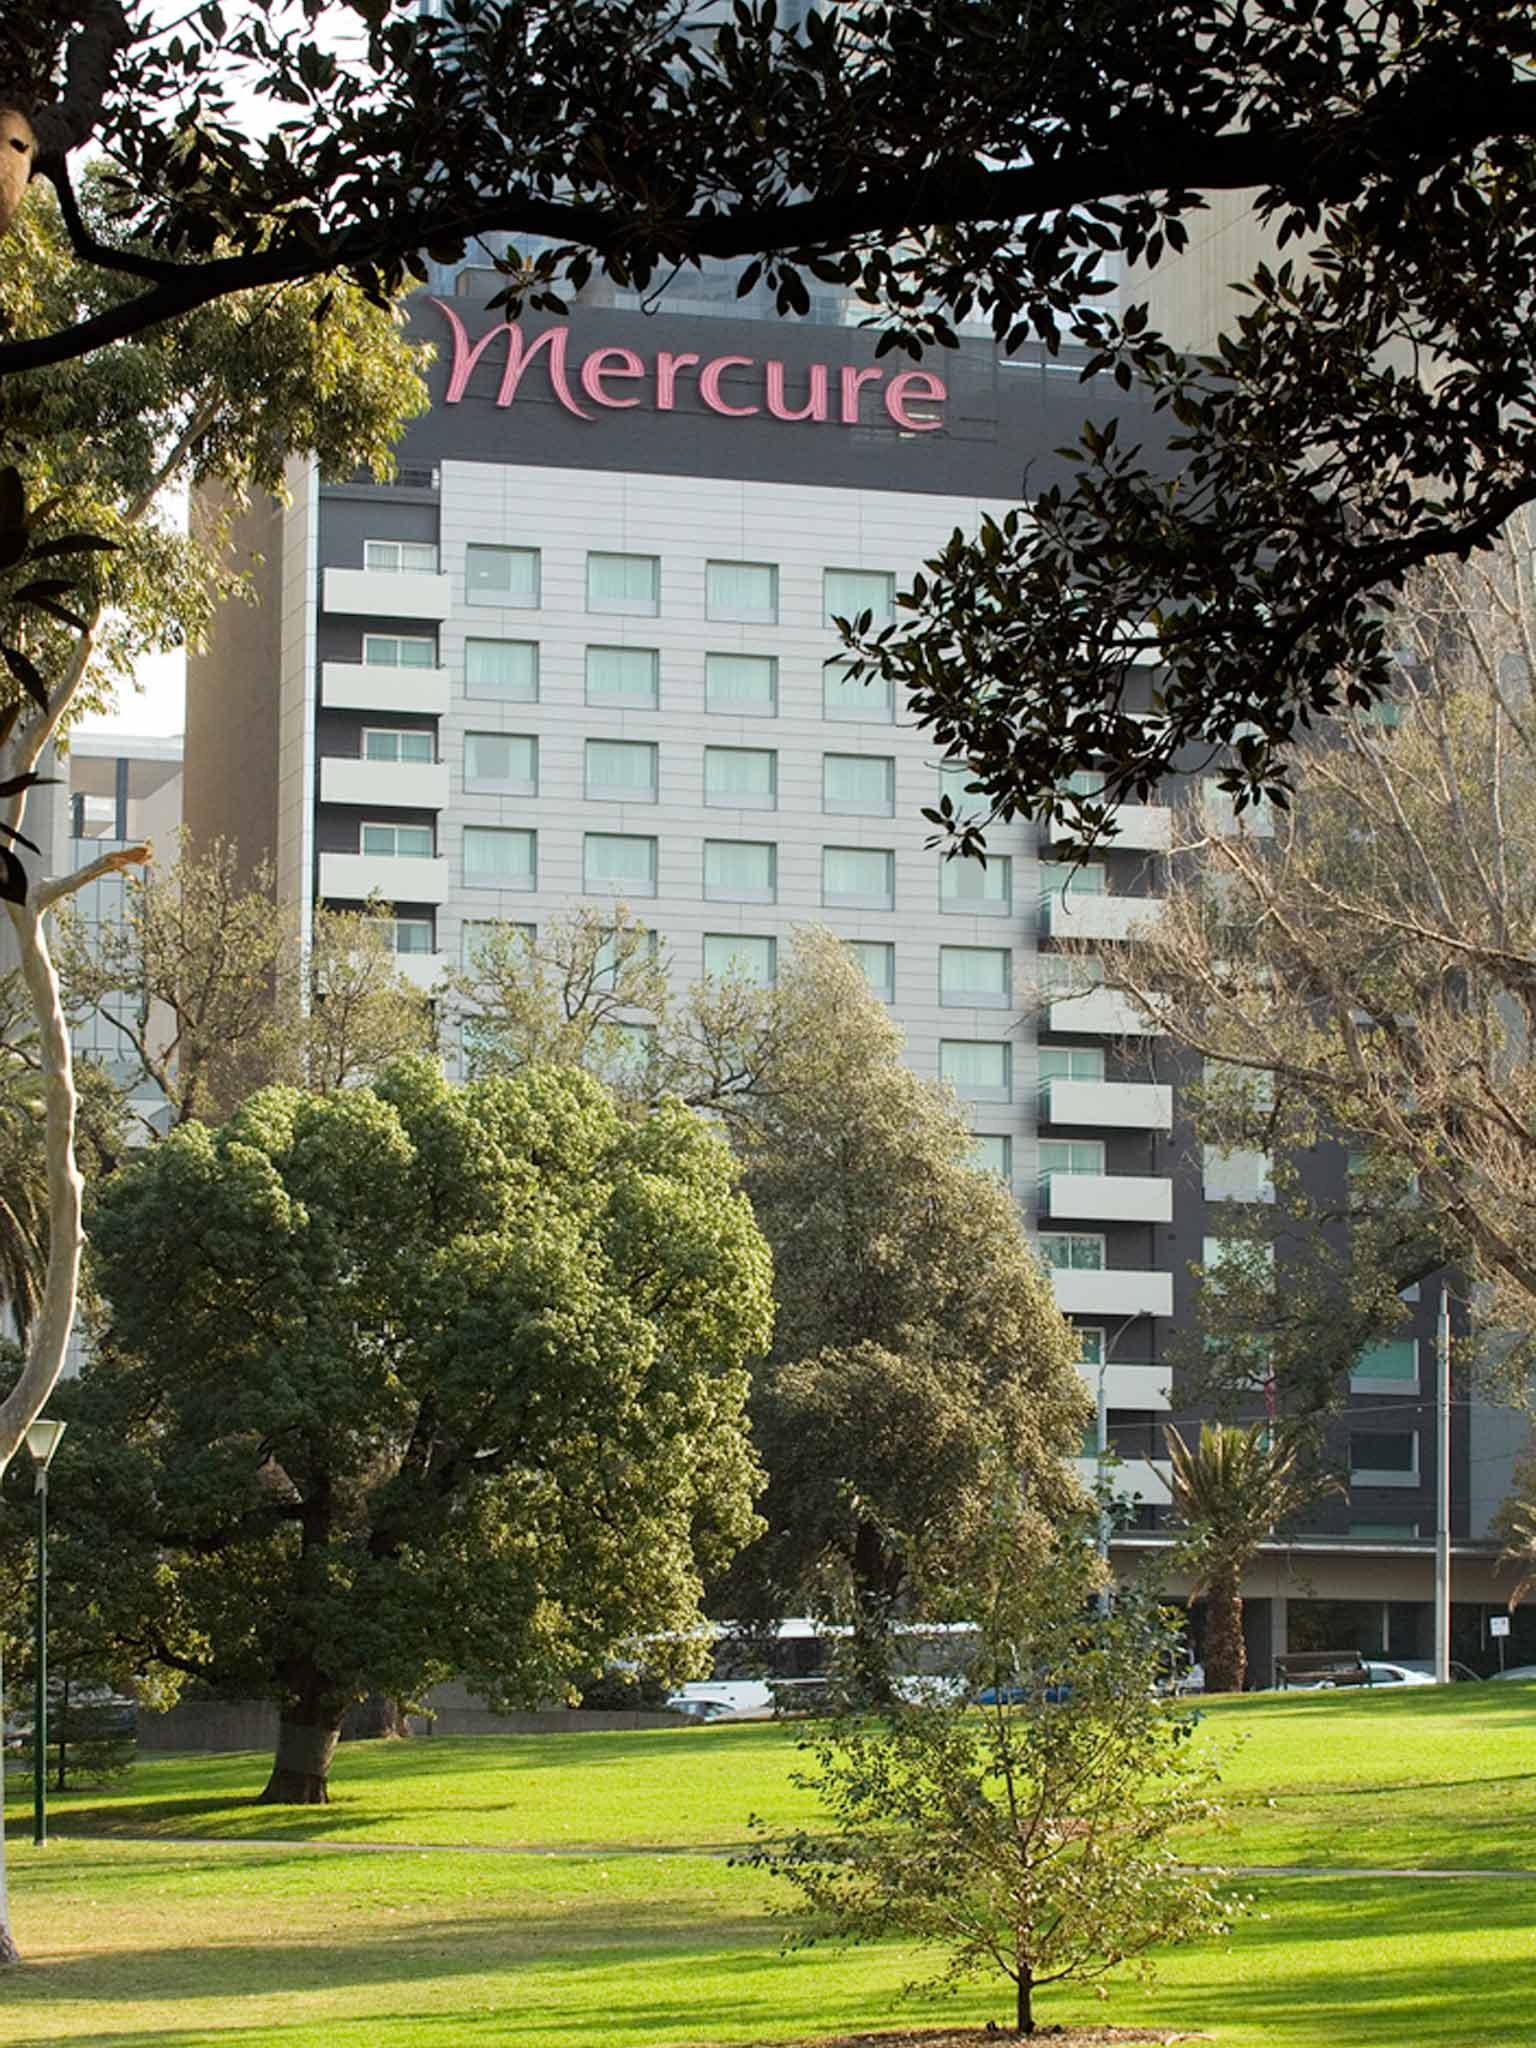 Mercure Hotel Melbourne Rekreationscenter